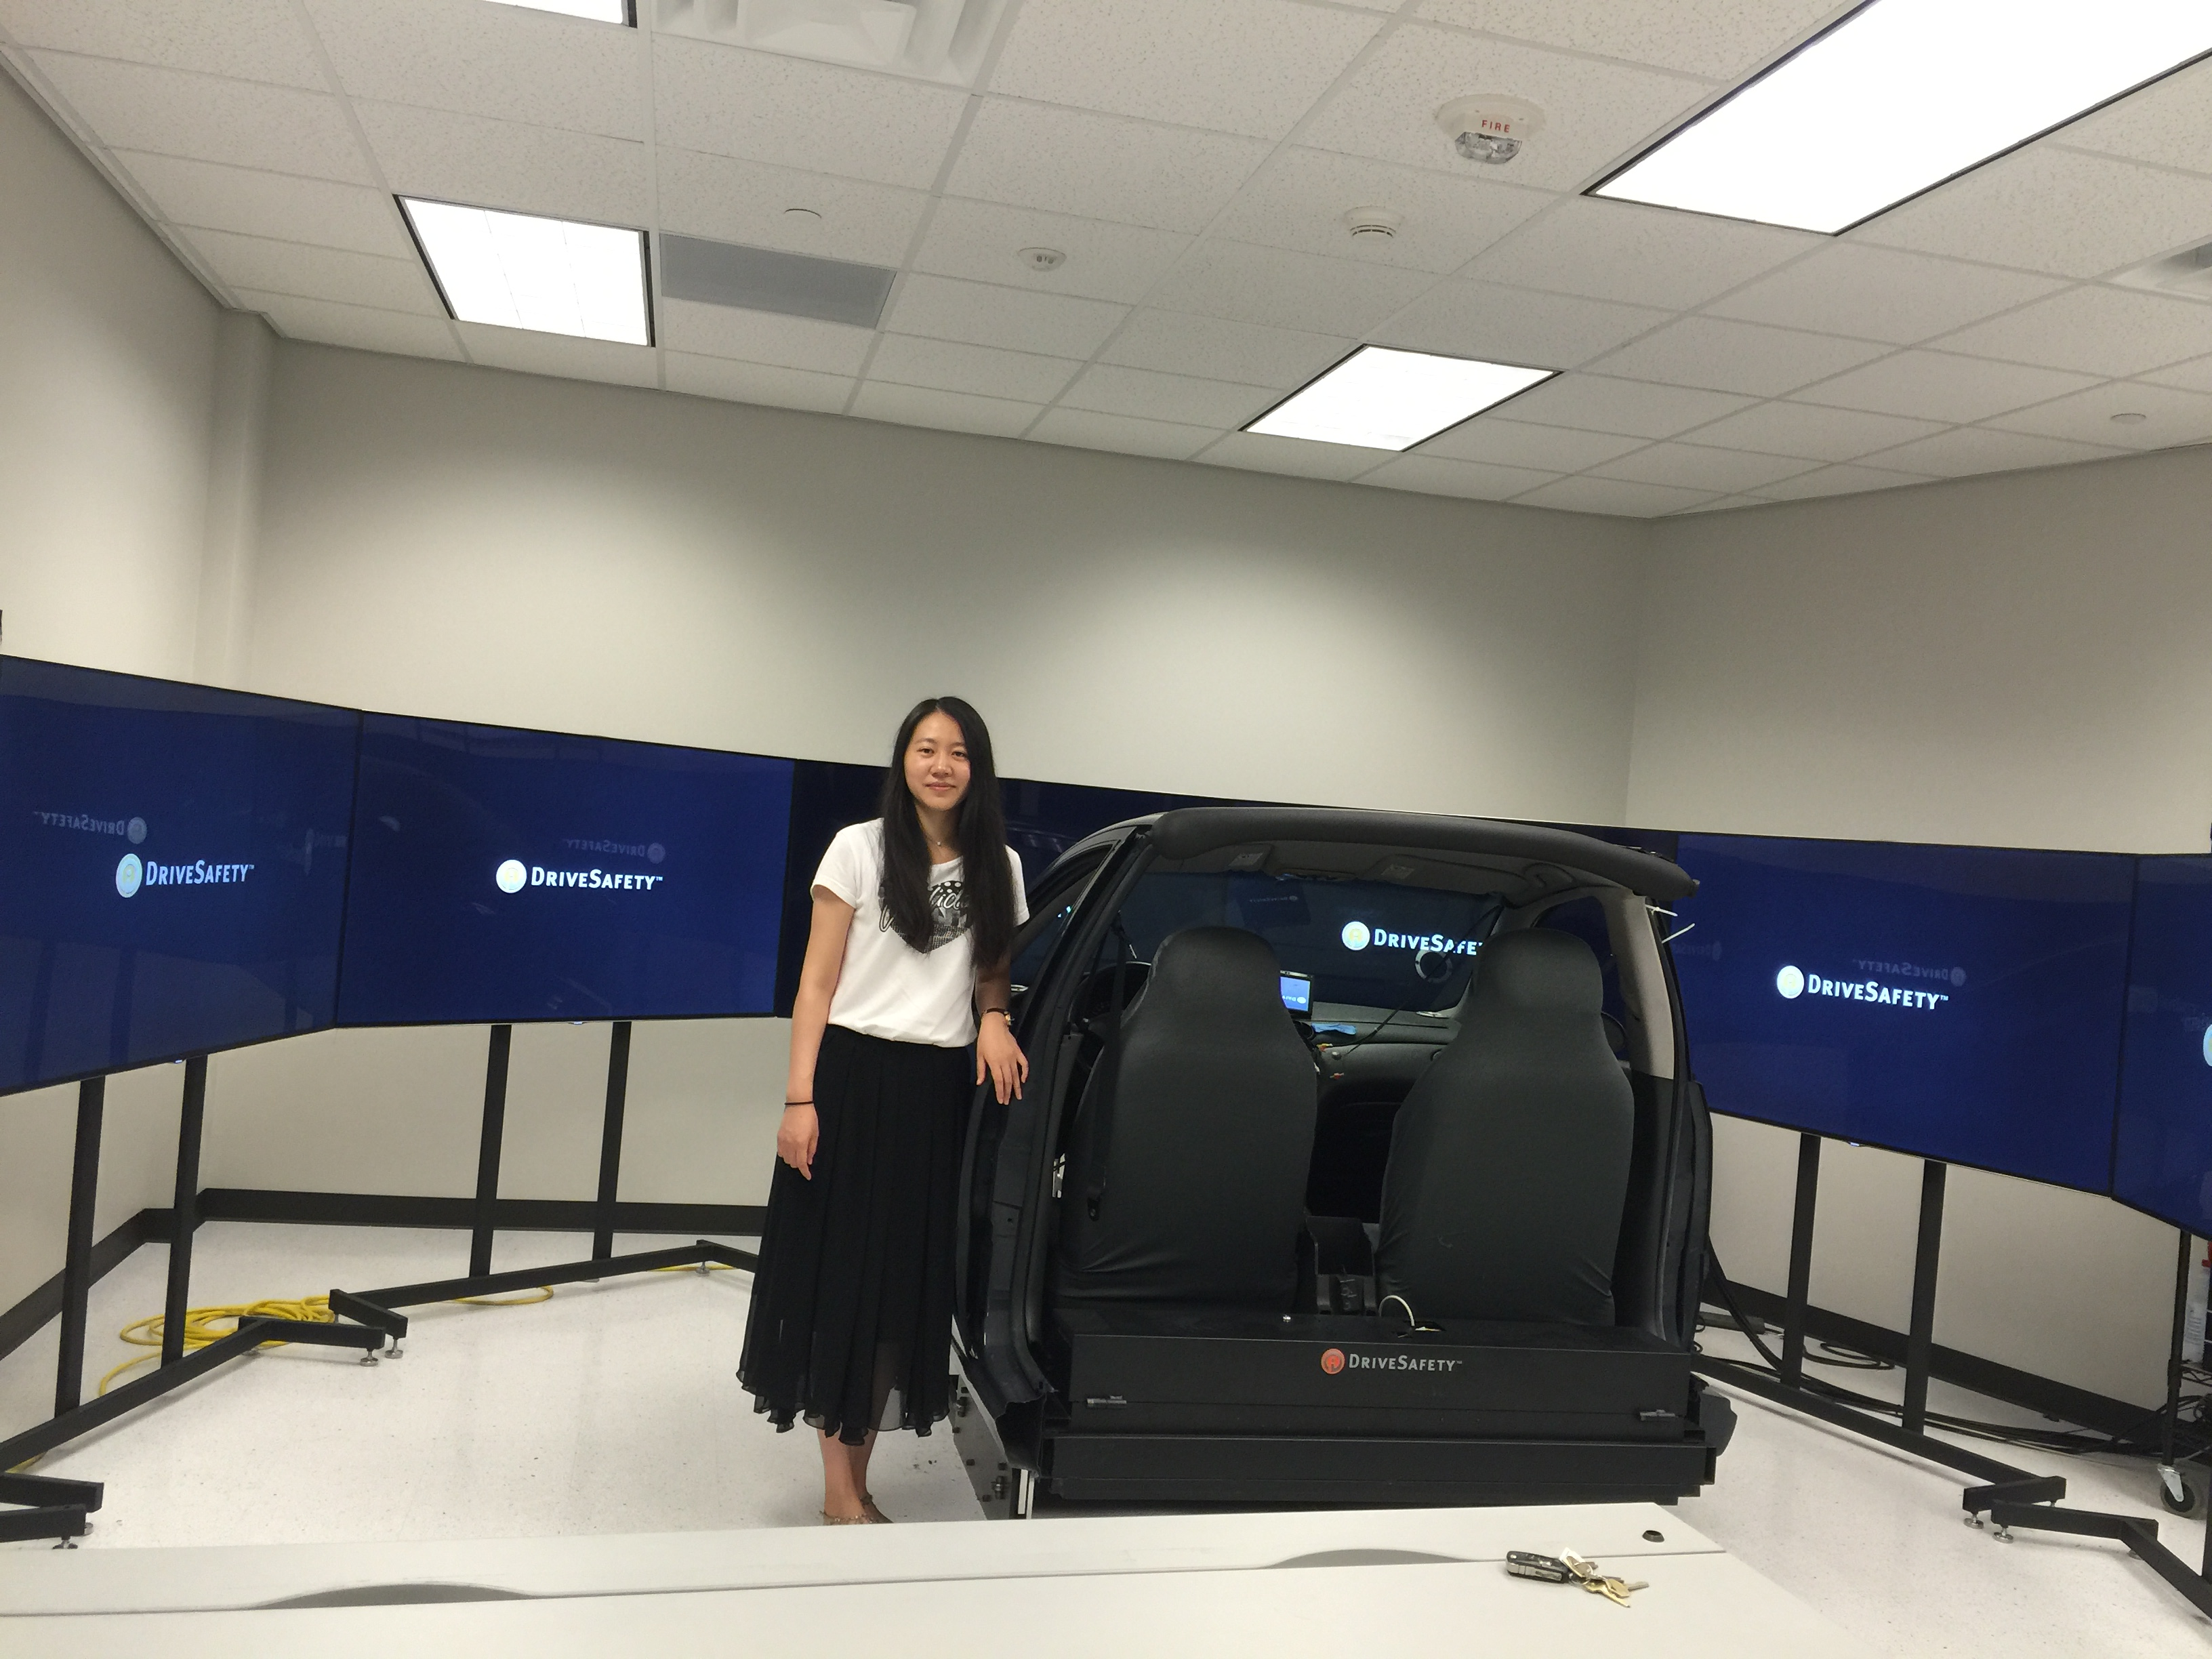 Ms. Sun in the driving simulator lab